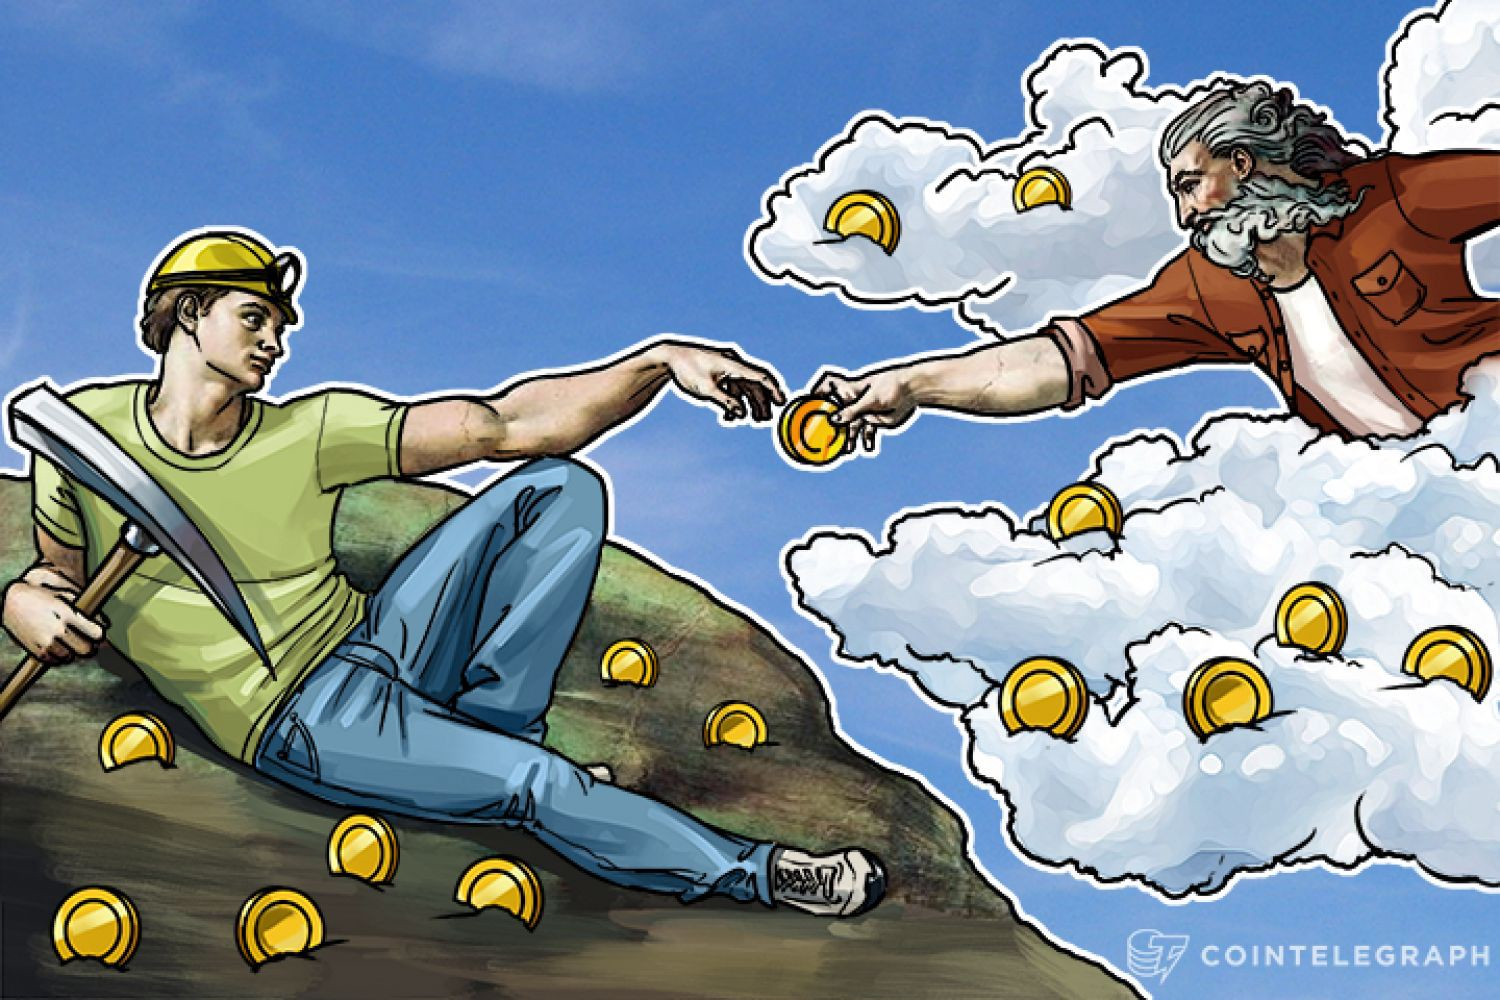 The Creation of Adam painting with Bitcoins